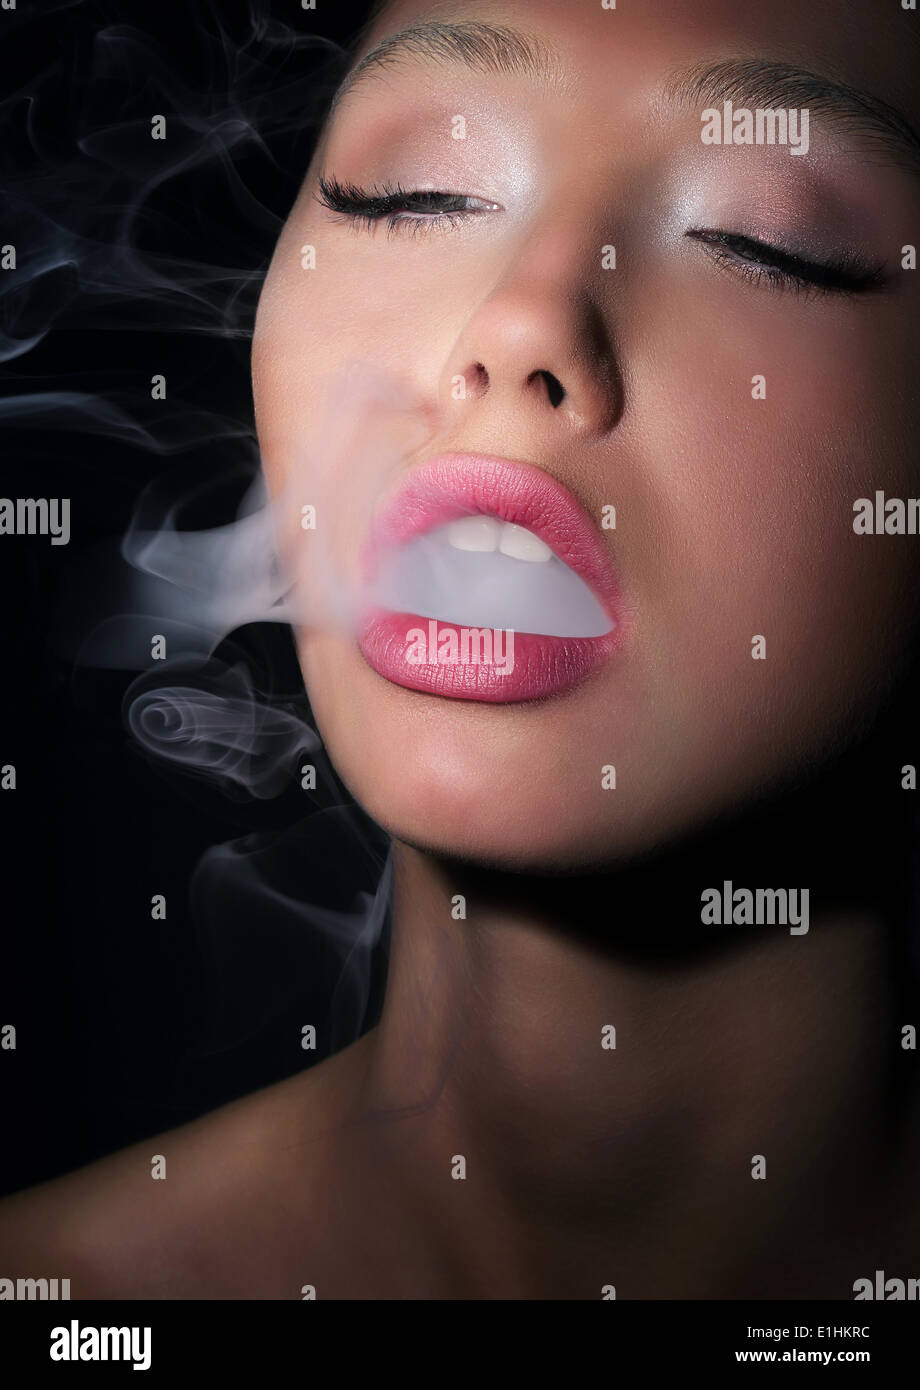 Dependence. Addiction. Woman Smoker Exhales Smoke of Cigarette - Stock Image